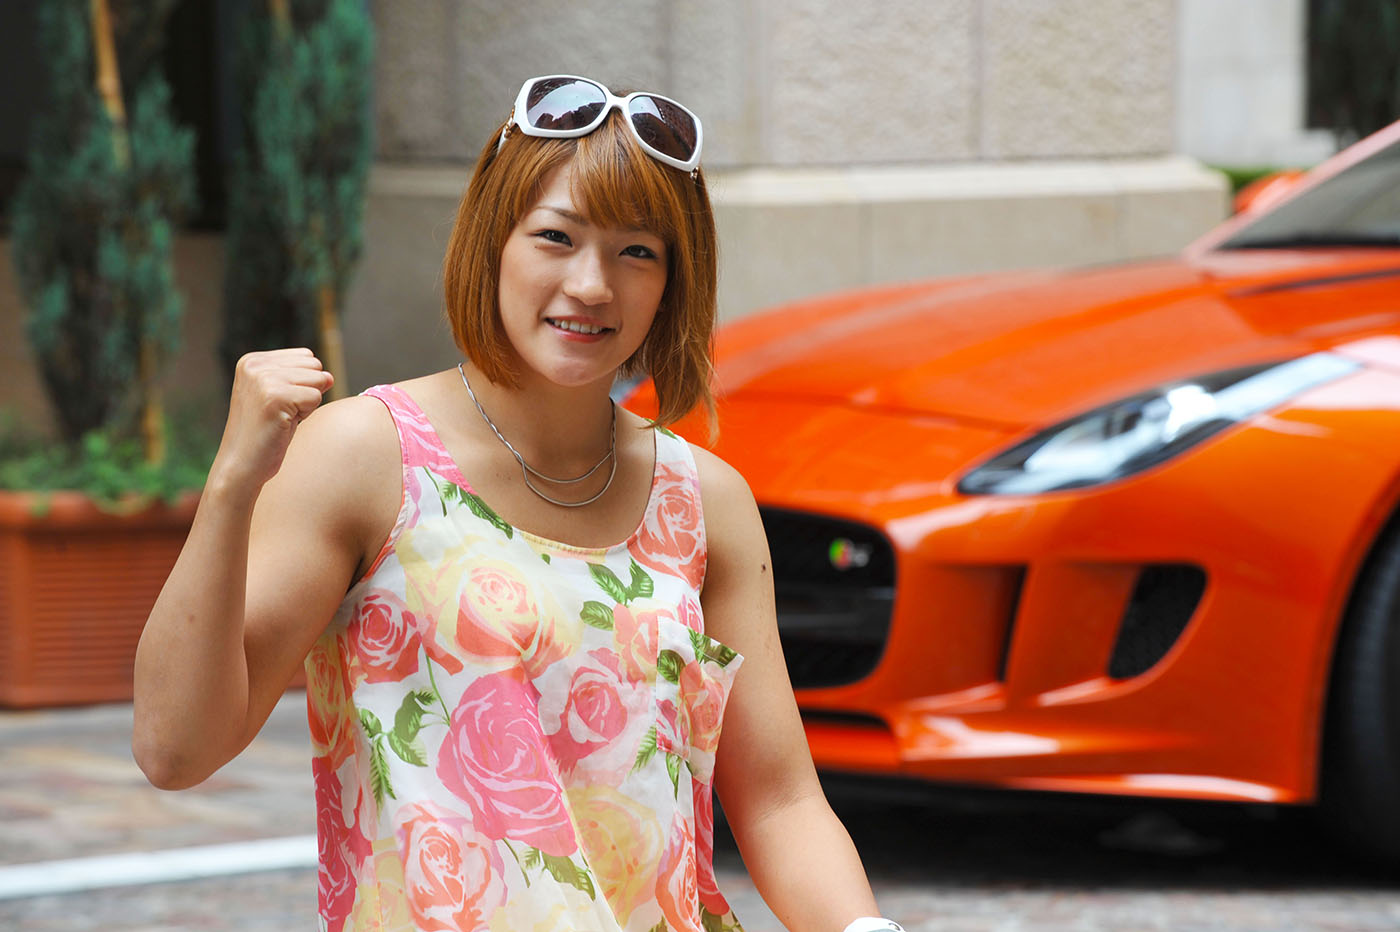 jaguar F-TYPE S VS ShootBoxing RENA